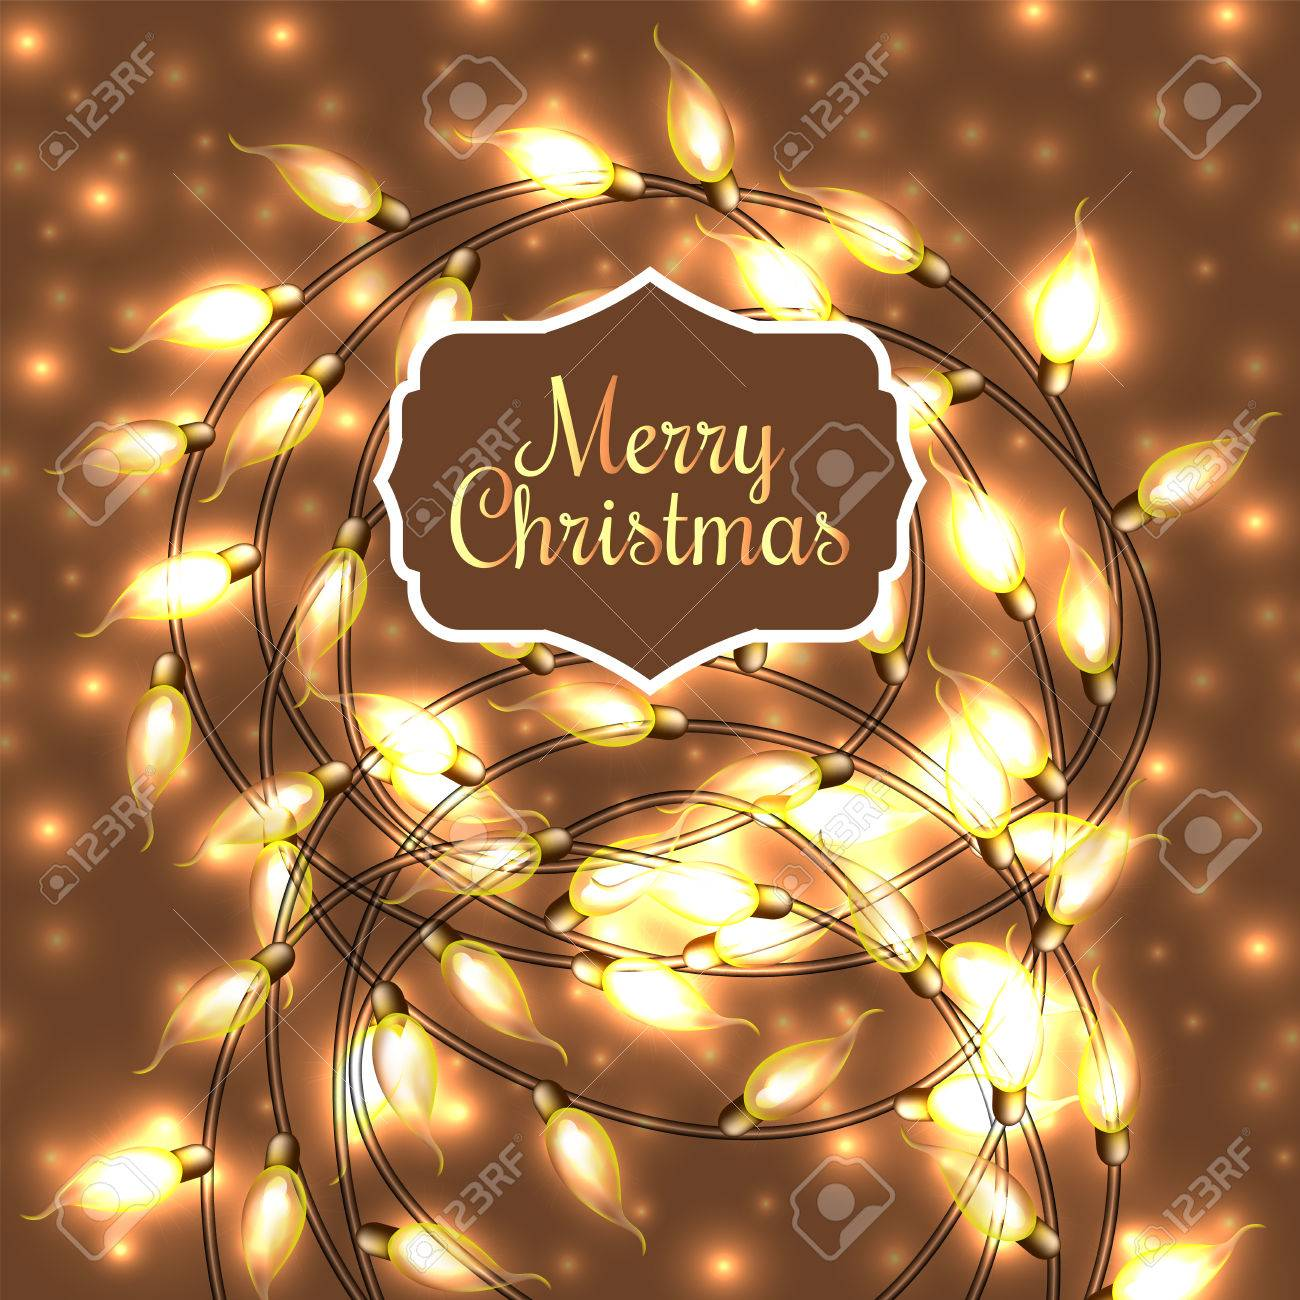 colorful glowing christmas lightsvector elements can be used as backdrop for new year decoration